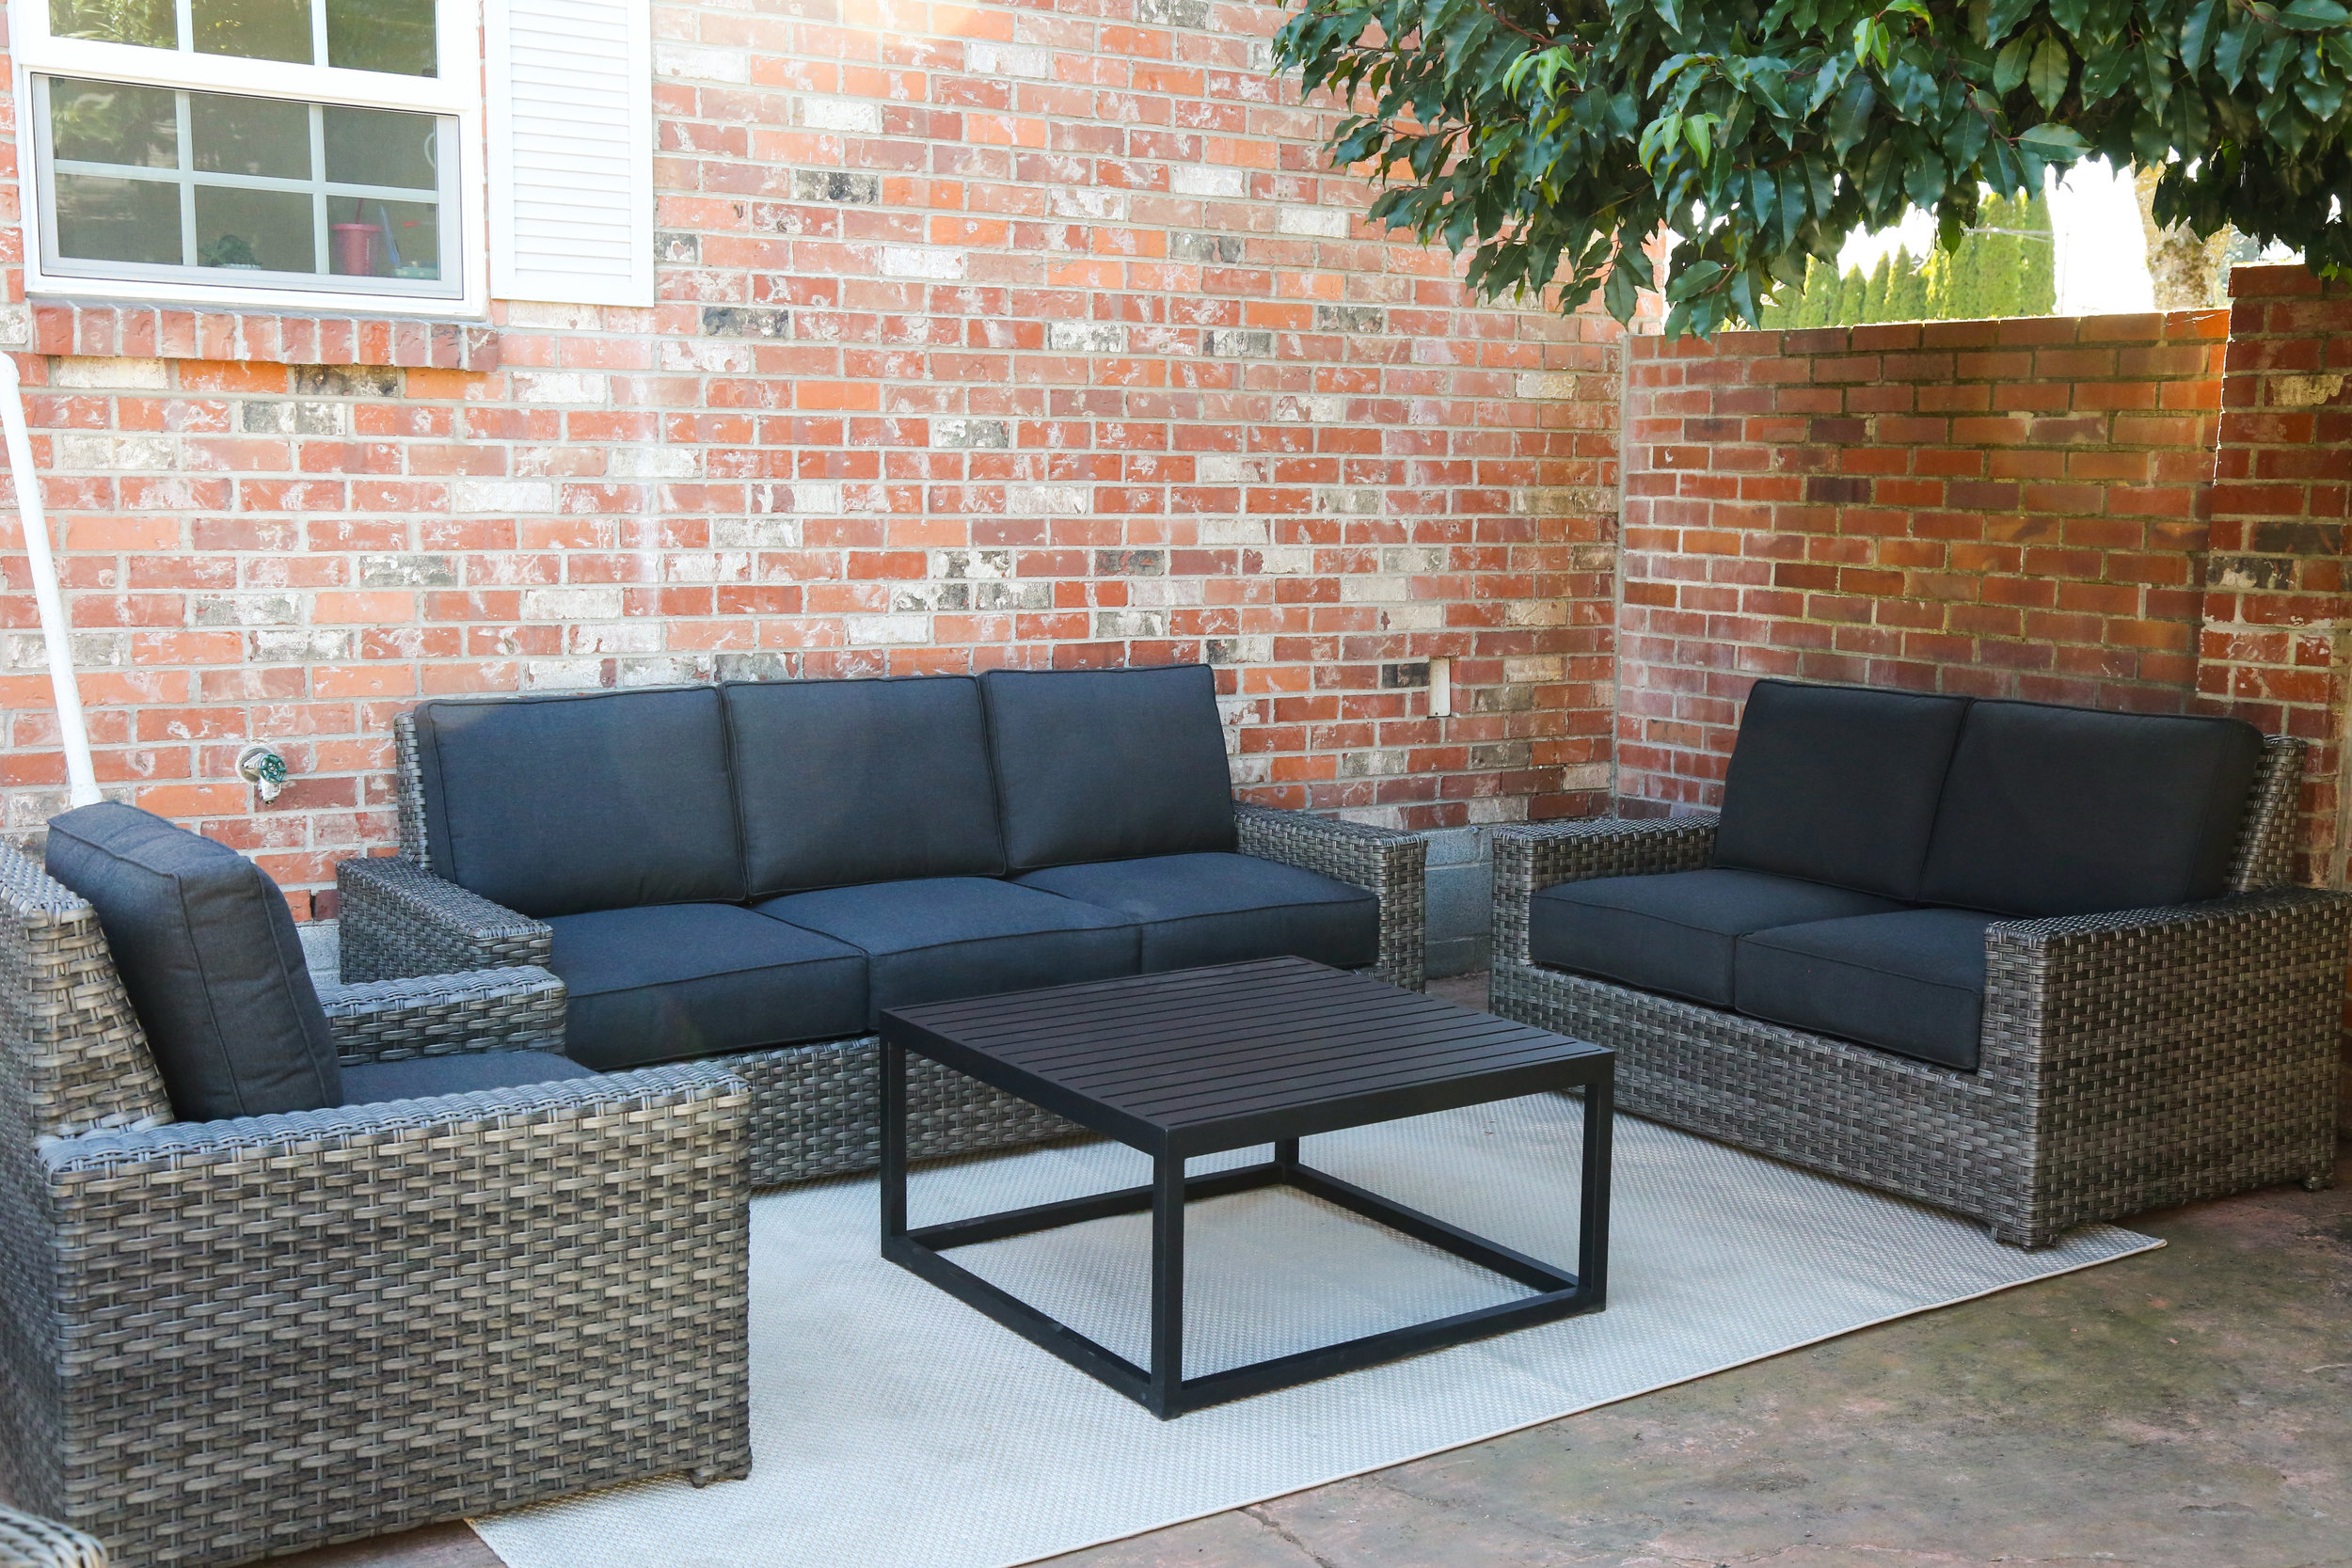 MAKE YOUR OUTDOOR SPACES A DESTINATION WITH COMFORT AND STYLE THAT LAST. -